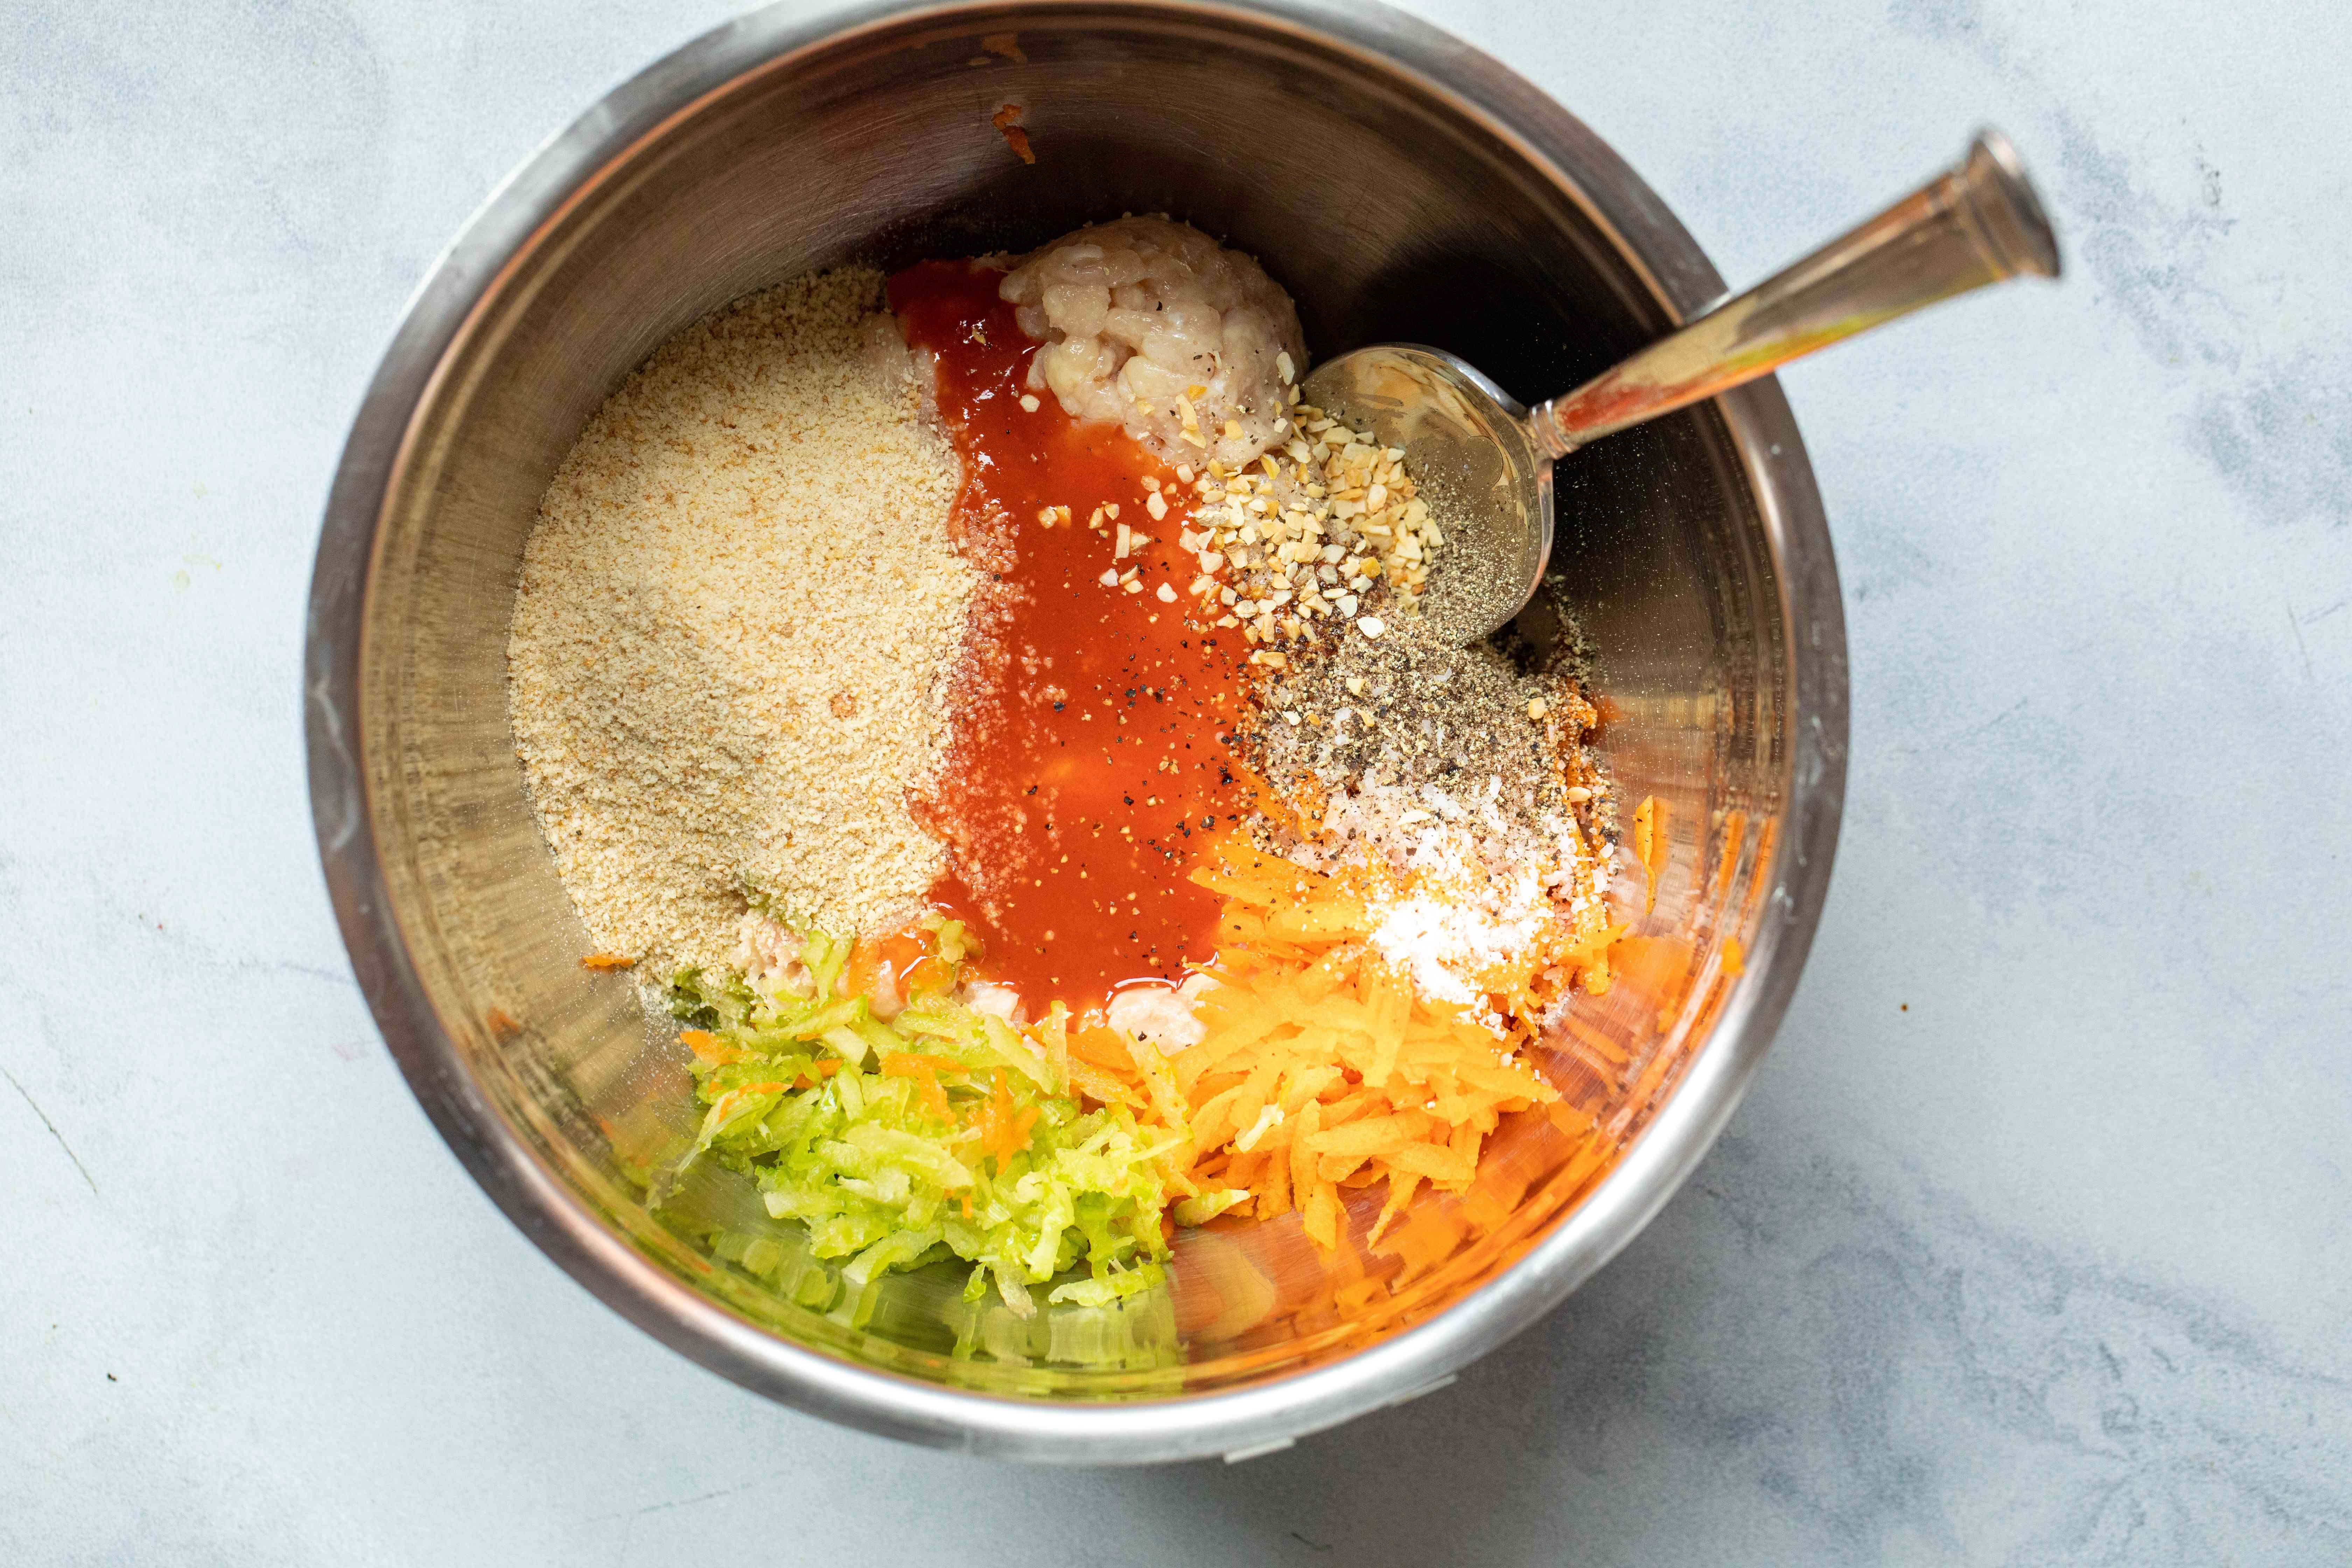 A metal bowl with ingredients to make buffalo chicken burgers.